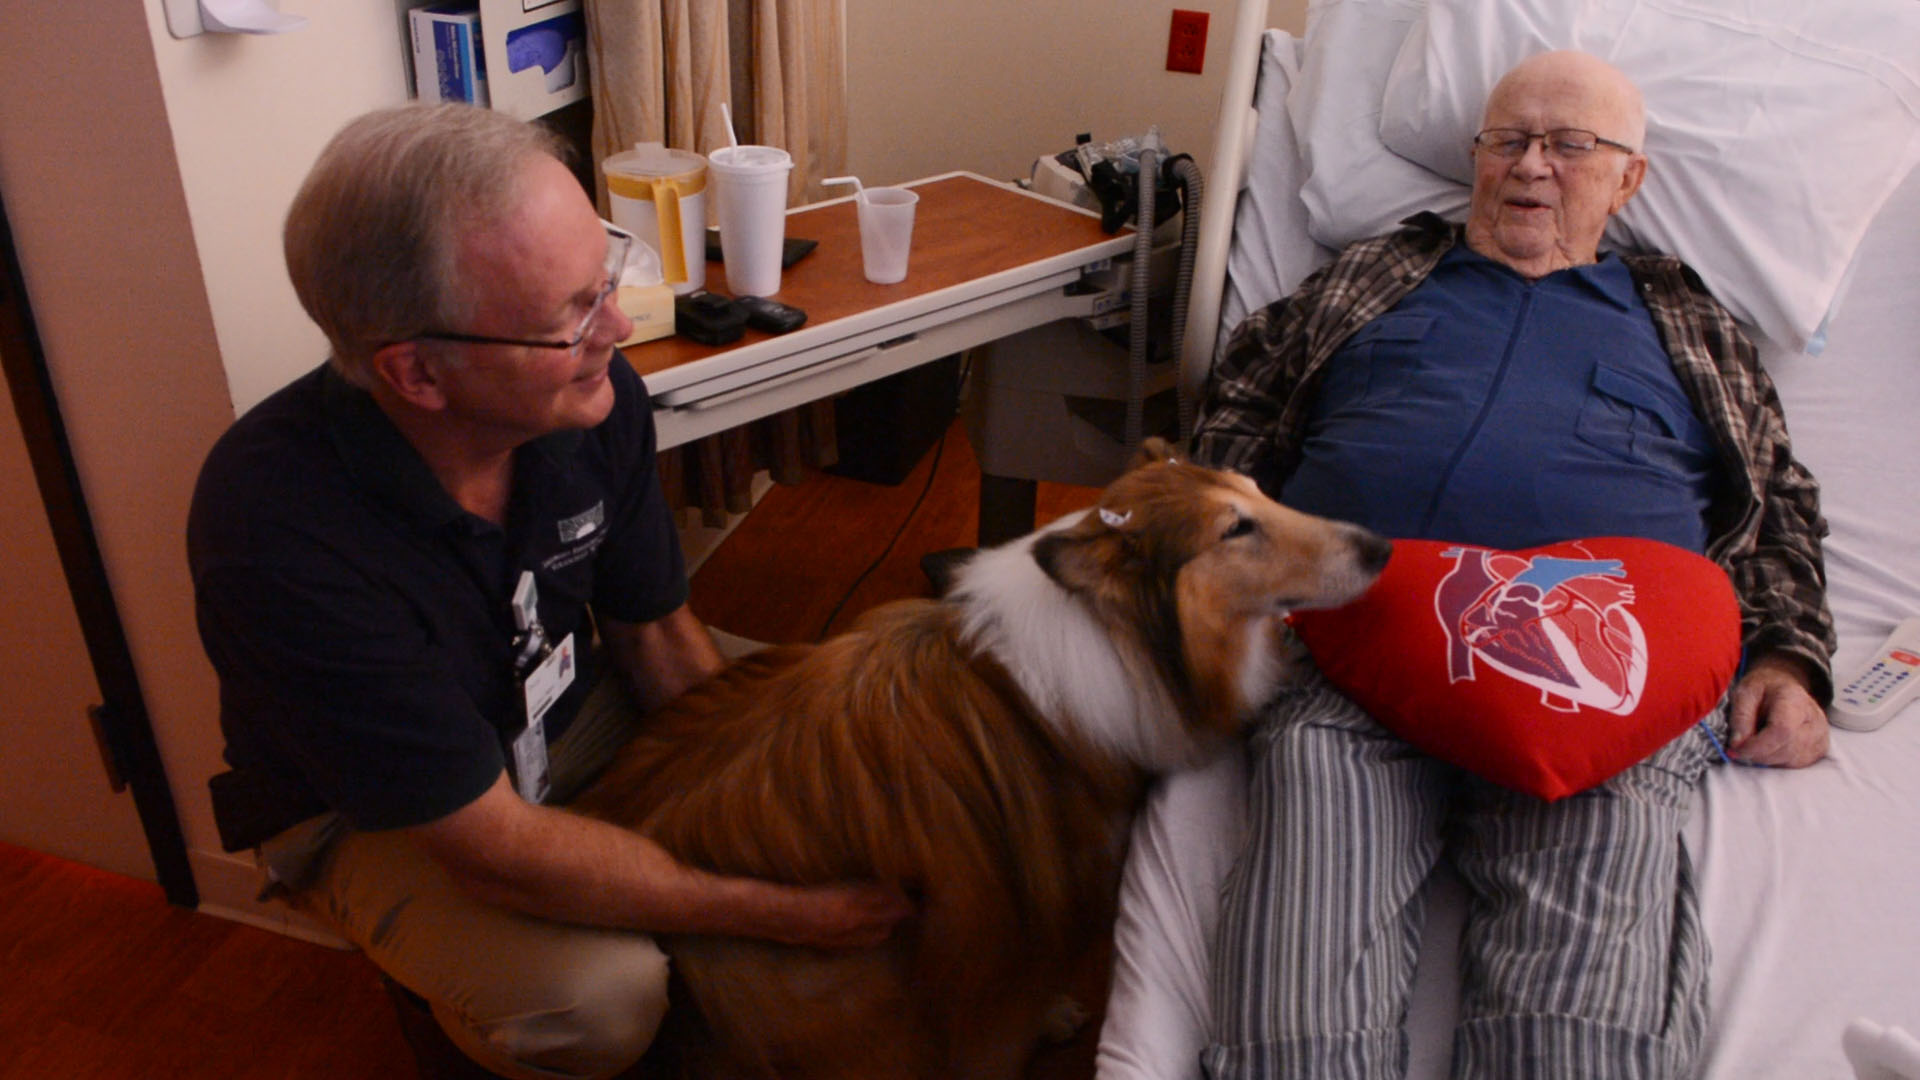 Doug Bell and therapy dog Bonnie visit a patient at Columbus Regional Hospital